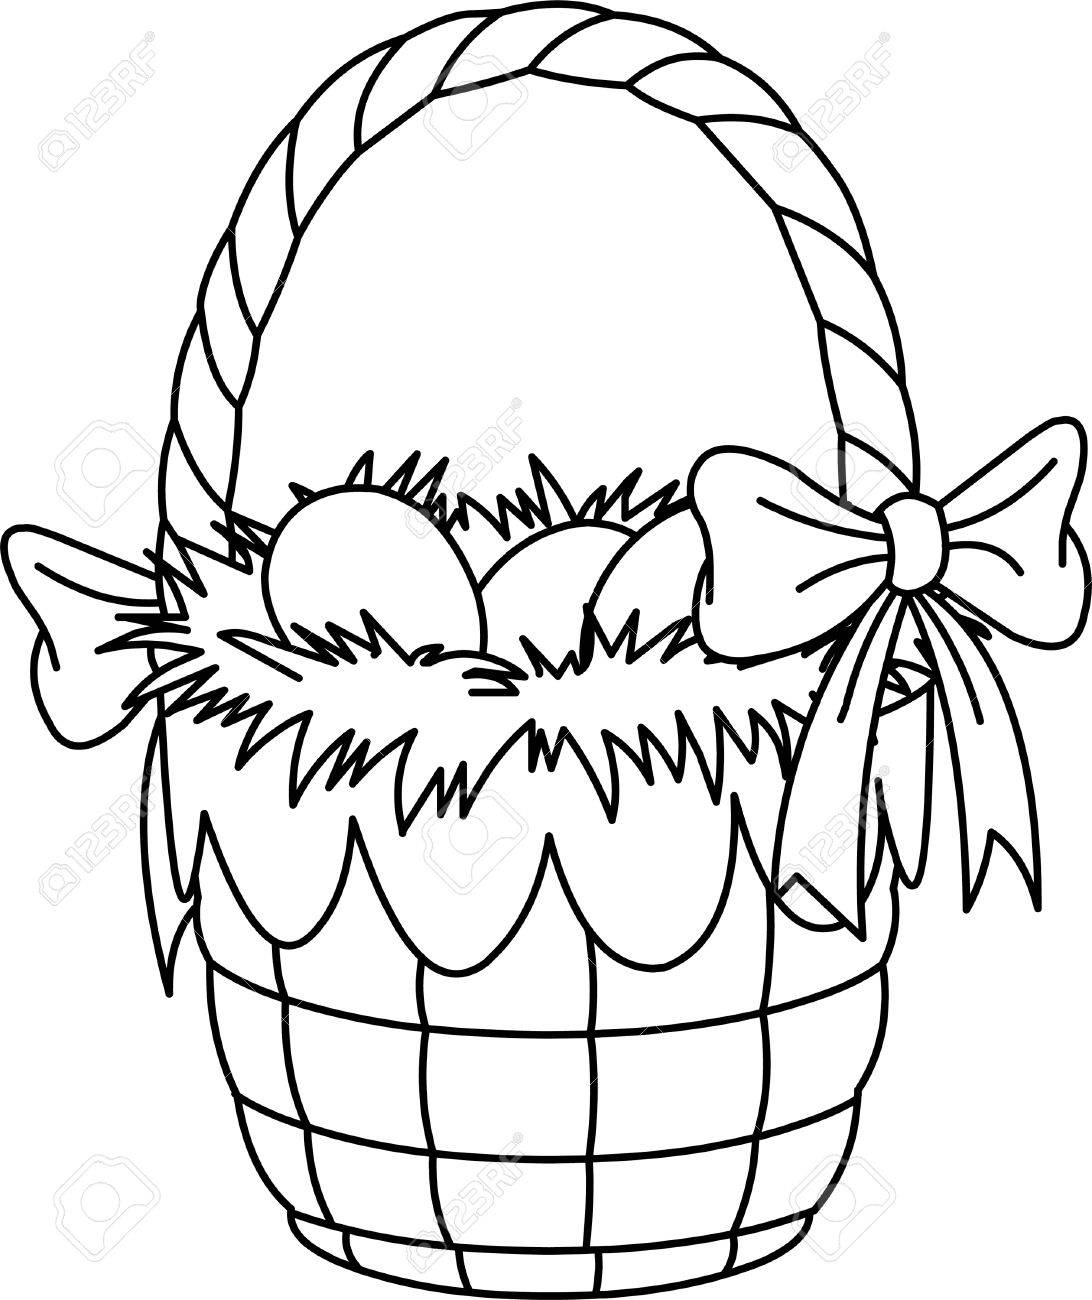 pretty easter basket coloring page royalty free cliparts vectors